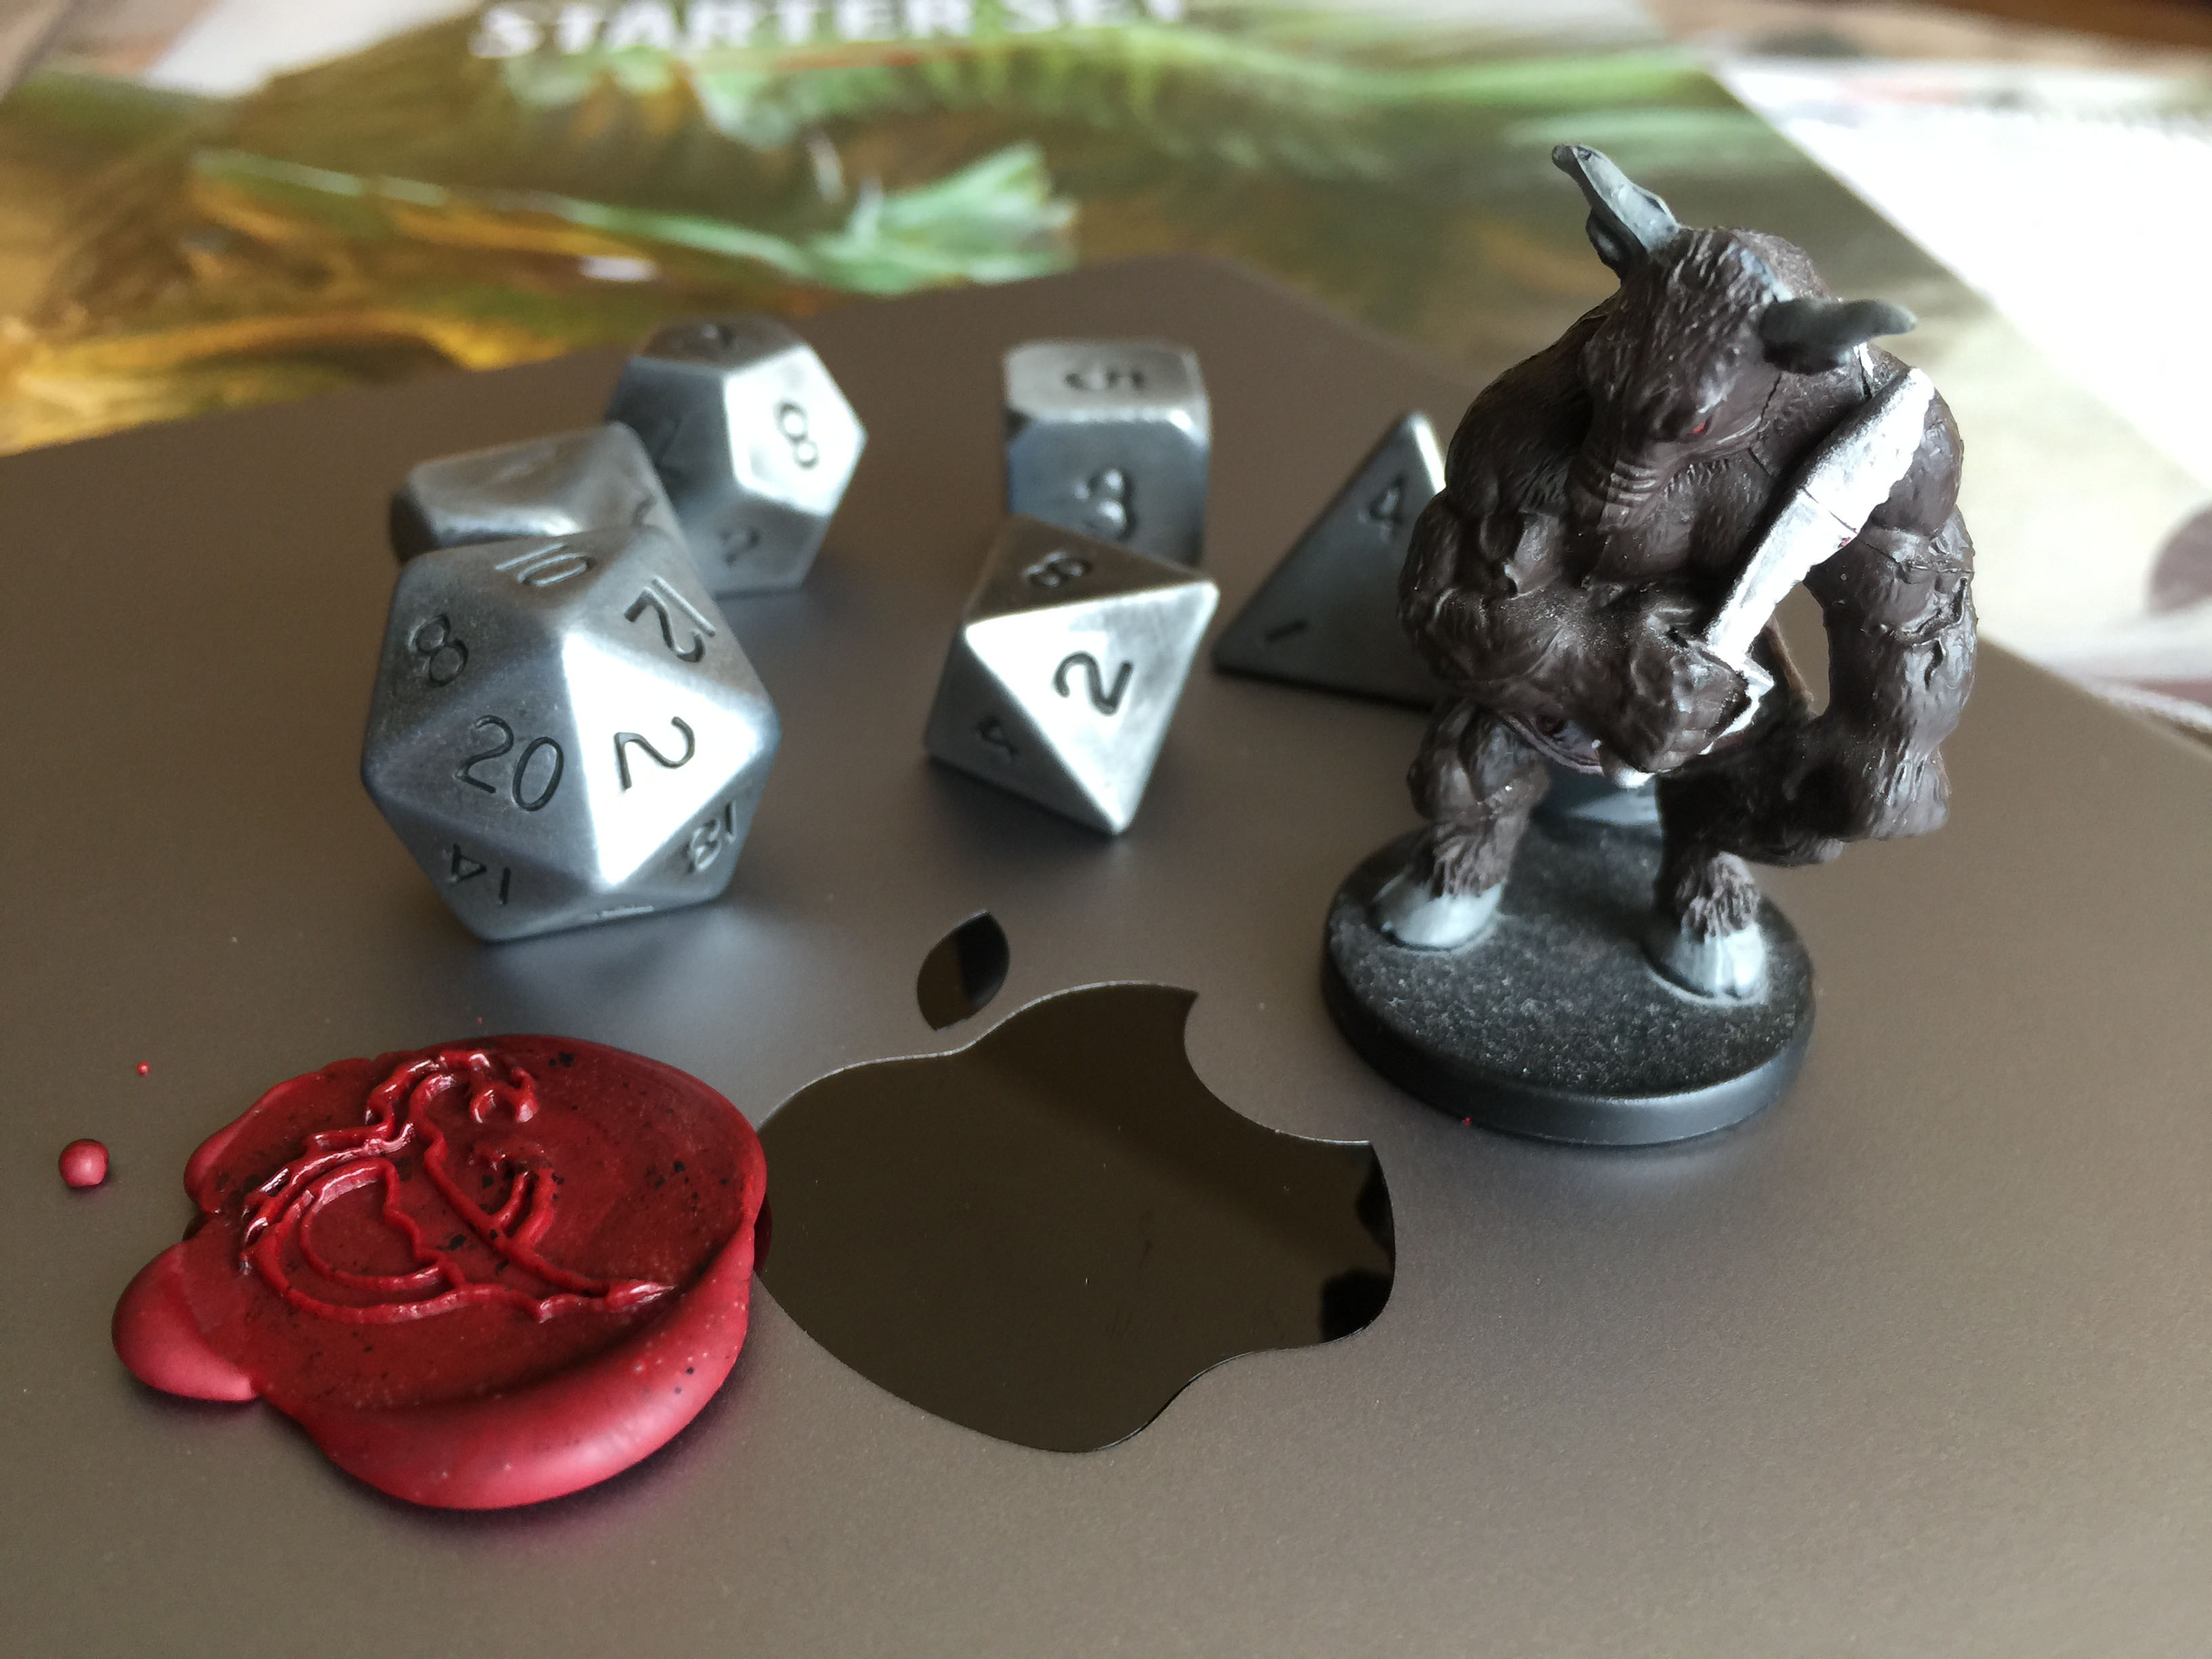 D&D on your tablet and in your browser, complete with dice and a Dungeon Master